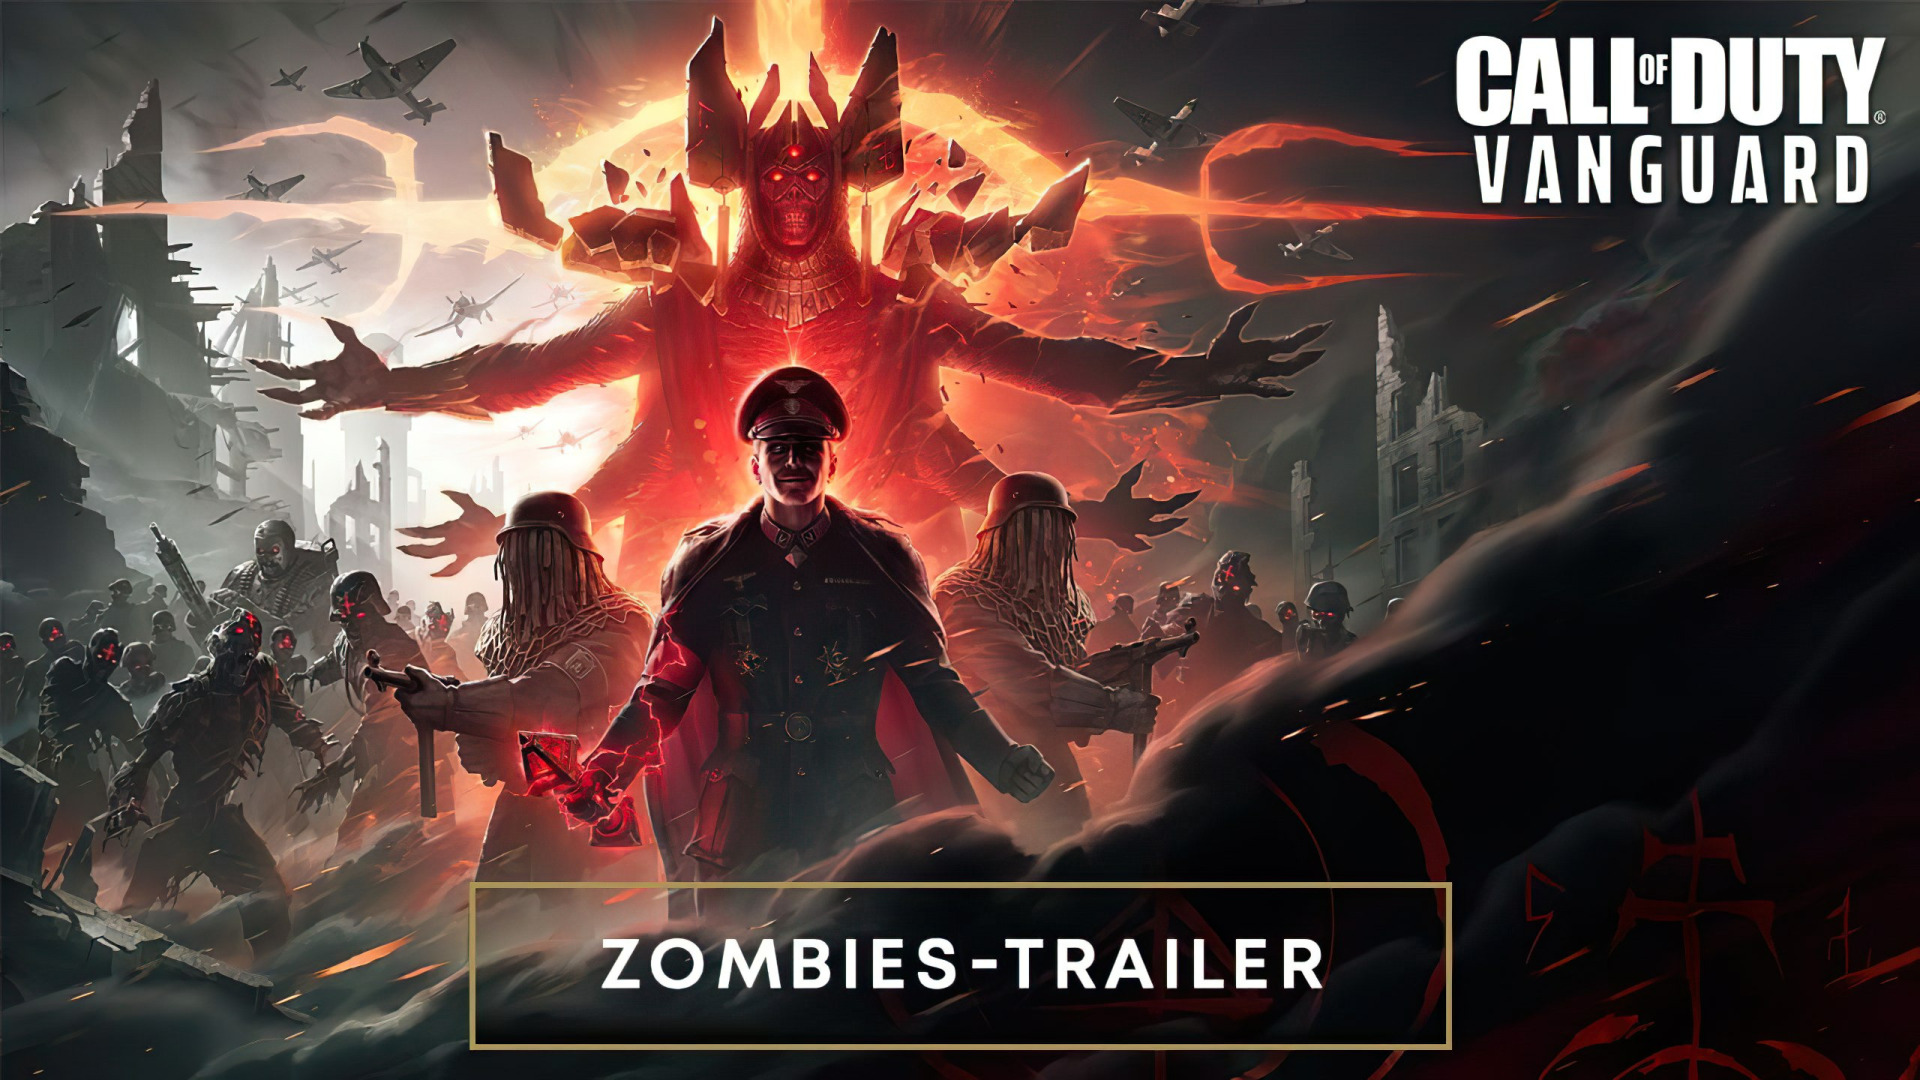 Trailer, Ego-Shooter, Call of Duty, Activision, Zombies, Cod, Koop, Vanguard, Call Of Duty: Vanguard, Call of Duty Vanguard, Treyarch Studios